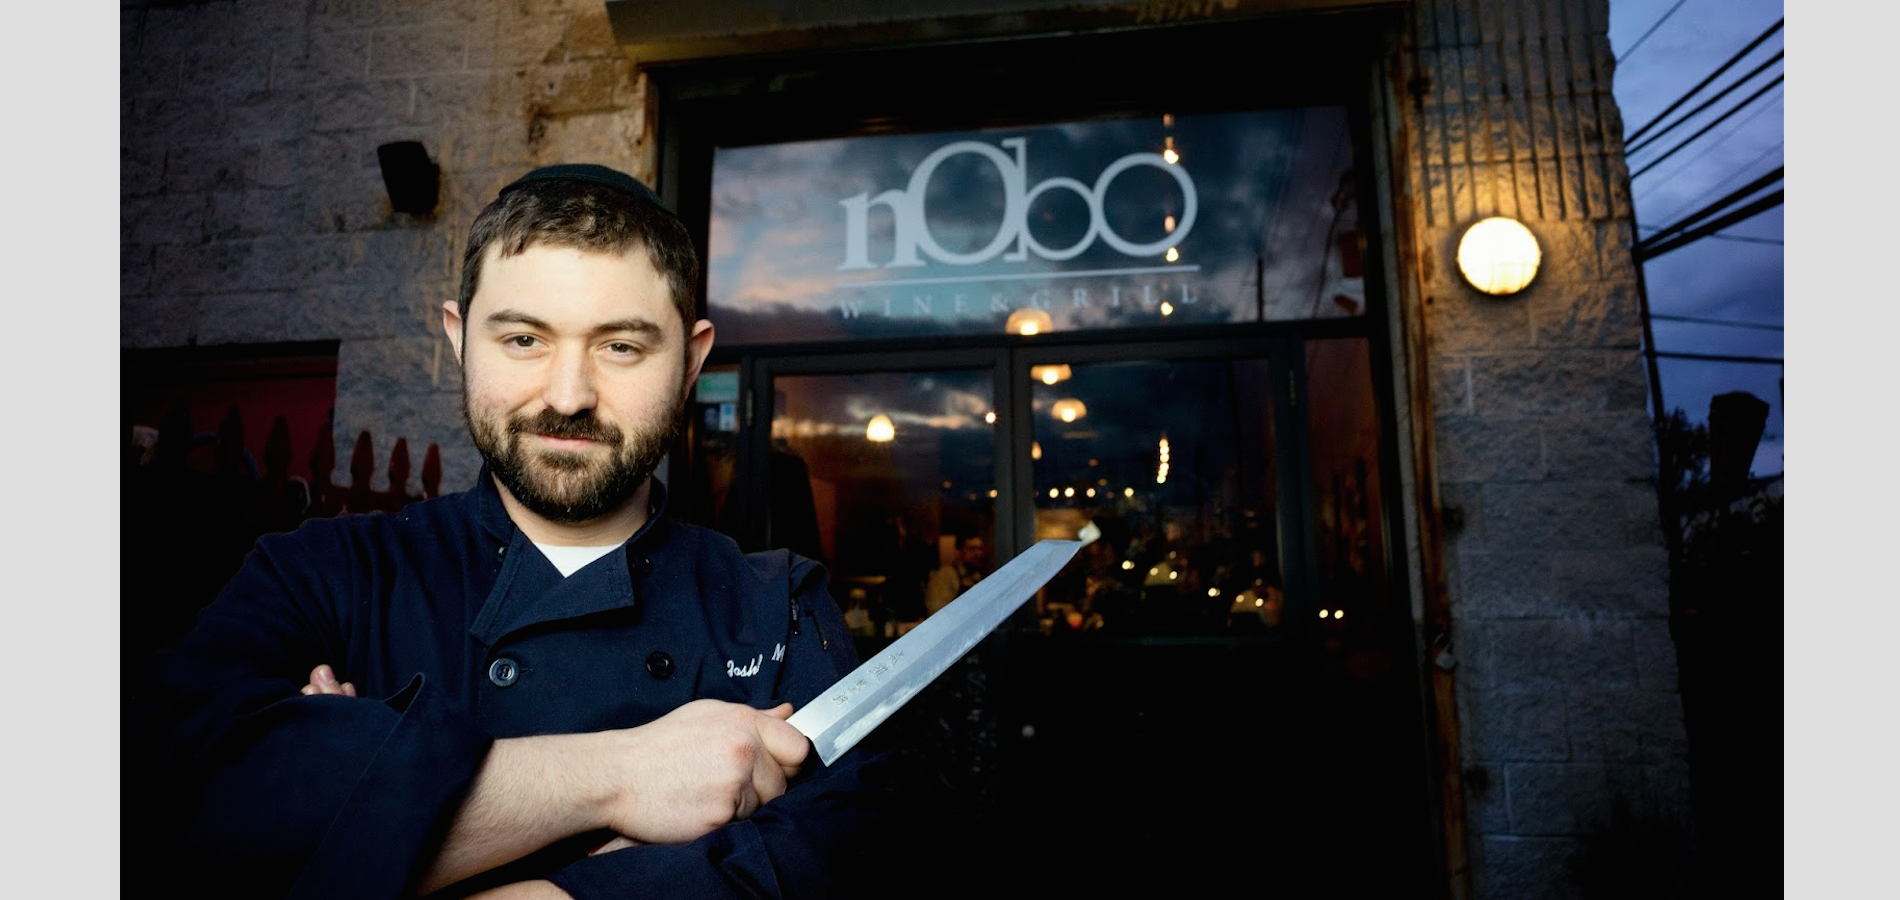 Kosher Oysters? Meet Josh Massin: Executive Chef and Innovator At NOBO